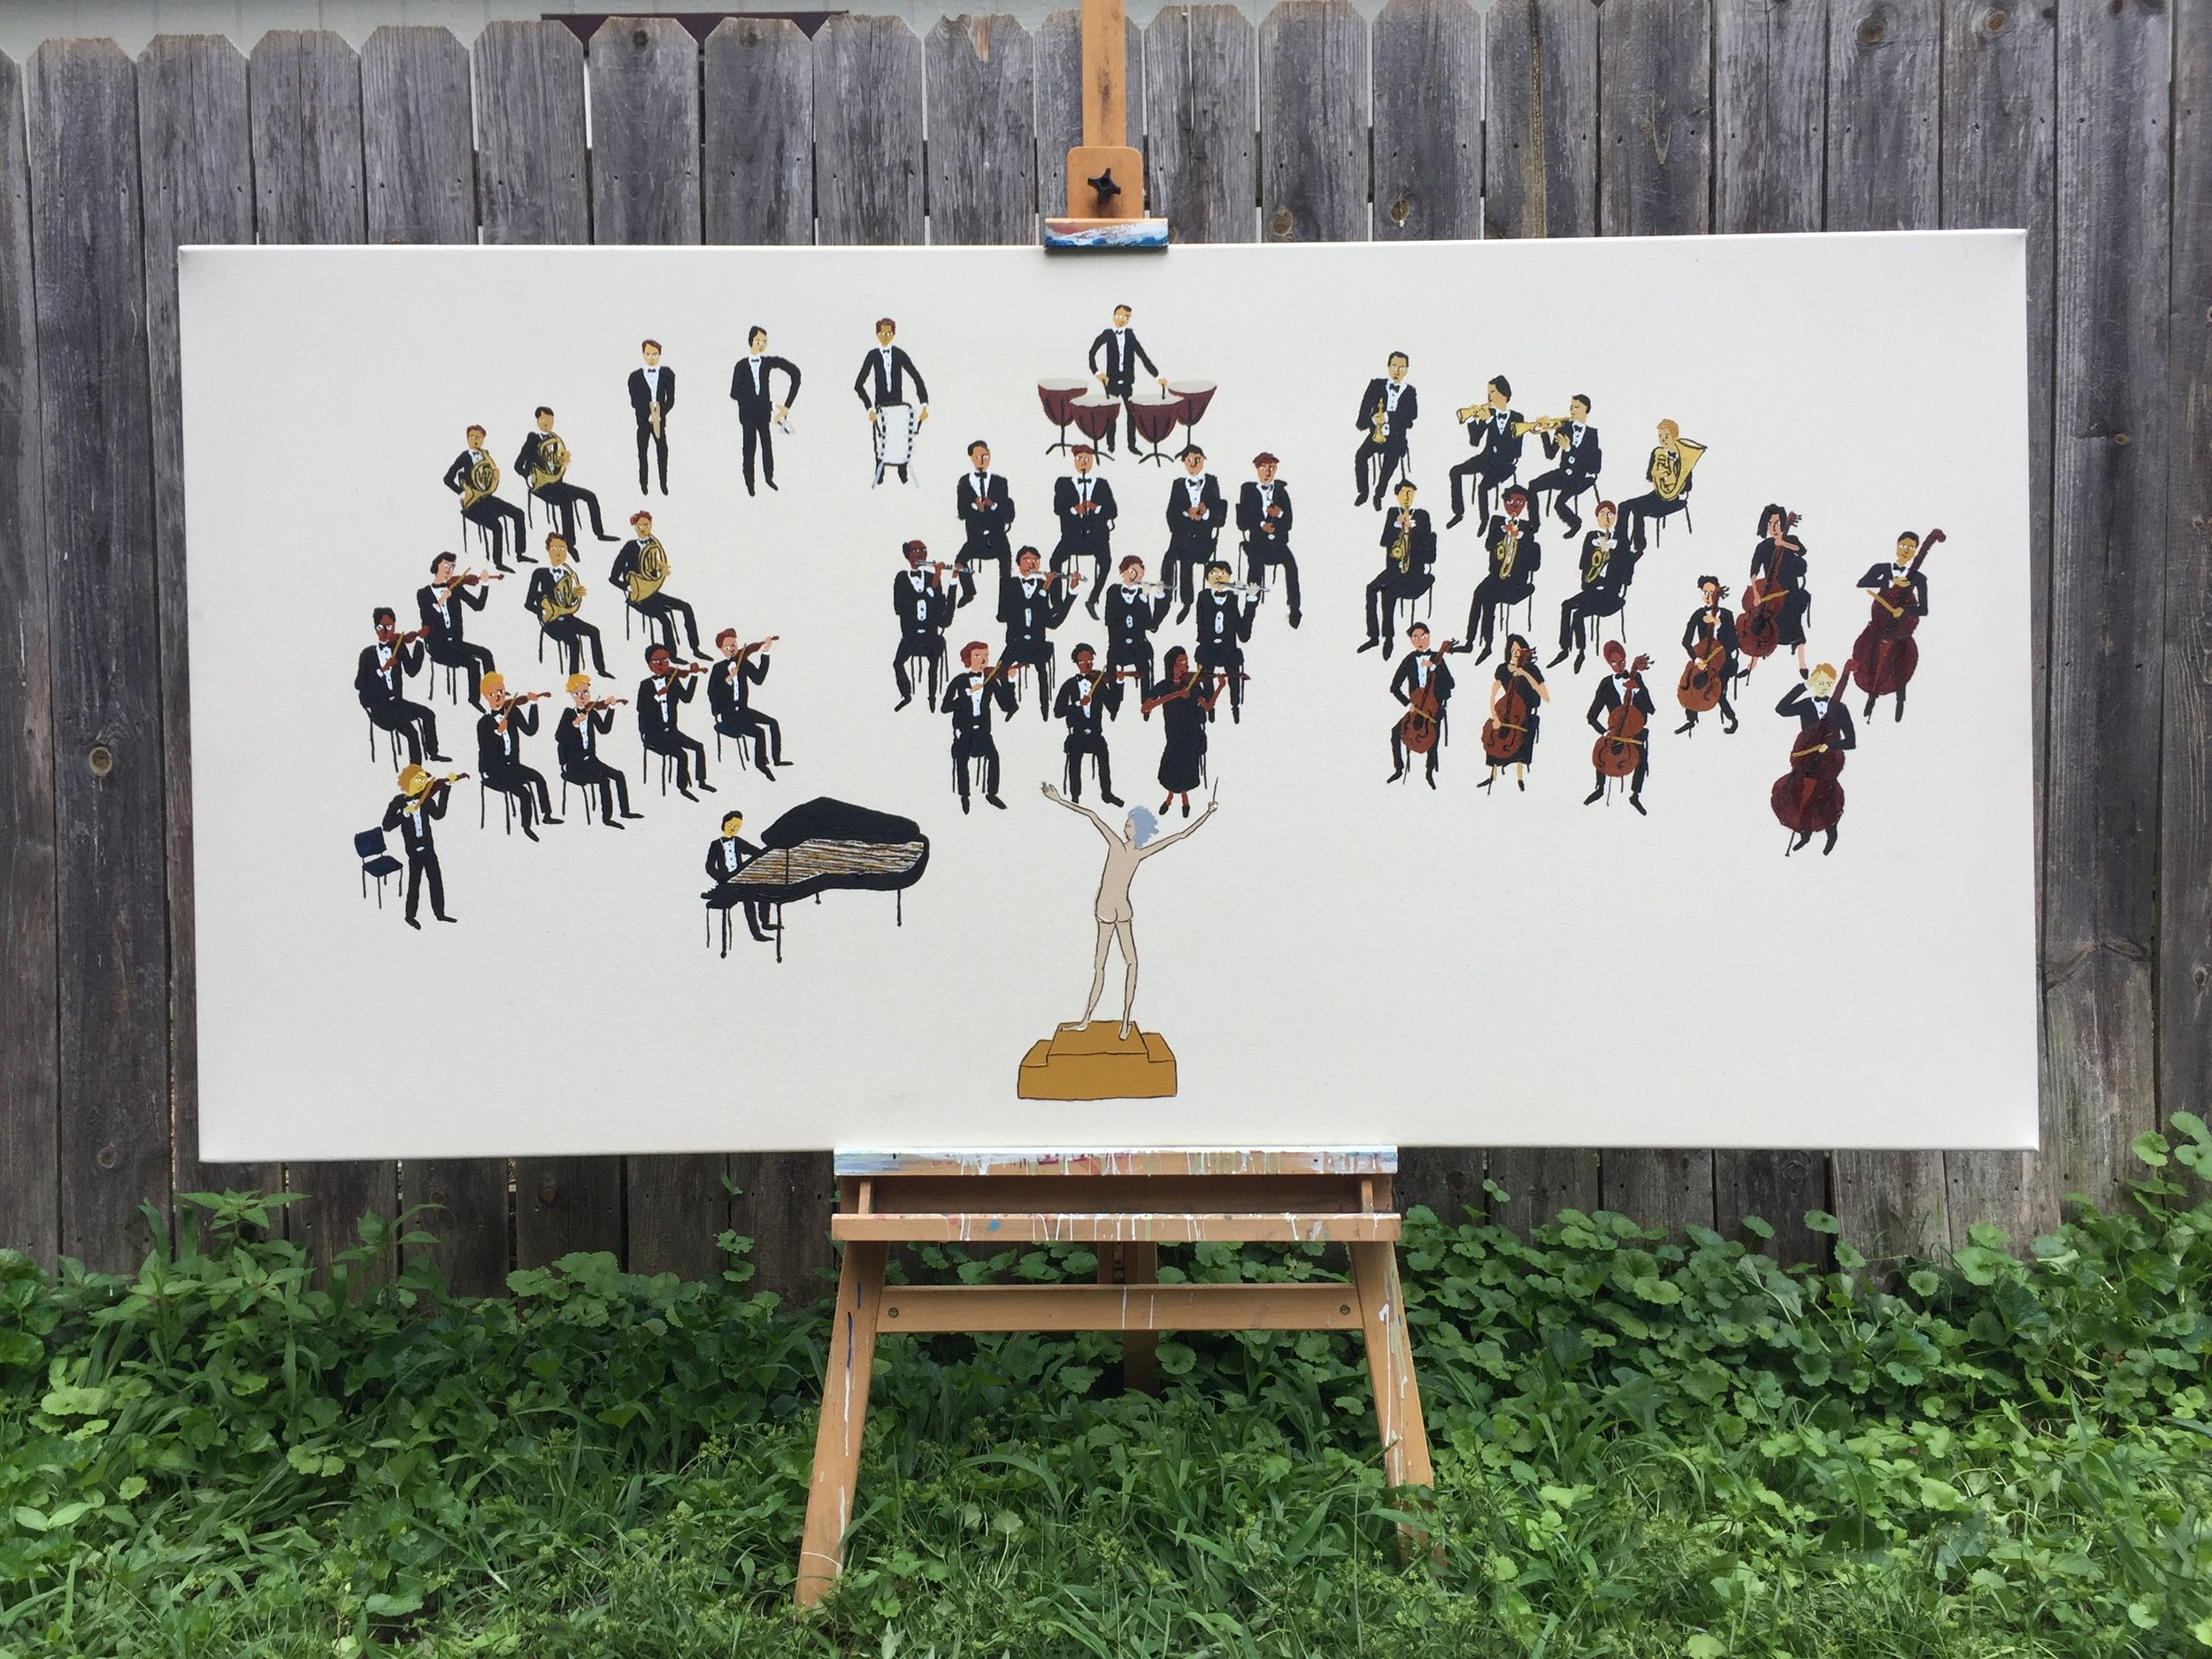 CONDUCTS AN ORCHESTRA